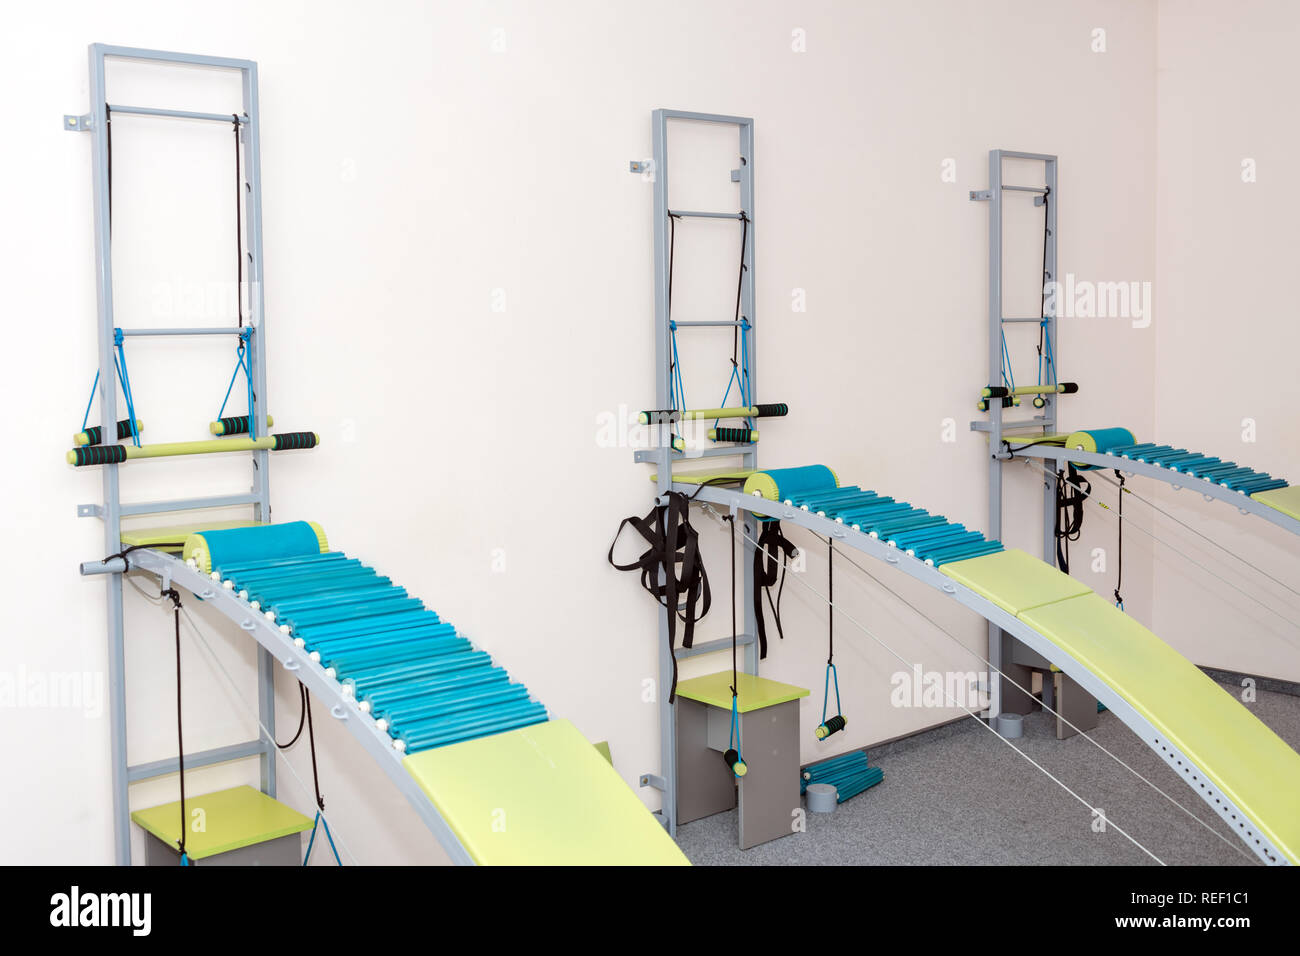 Medical spine trainer equipment. Spinal cord injury rehabilitation equipment in modern clinic - Stock Image